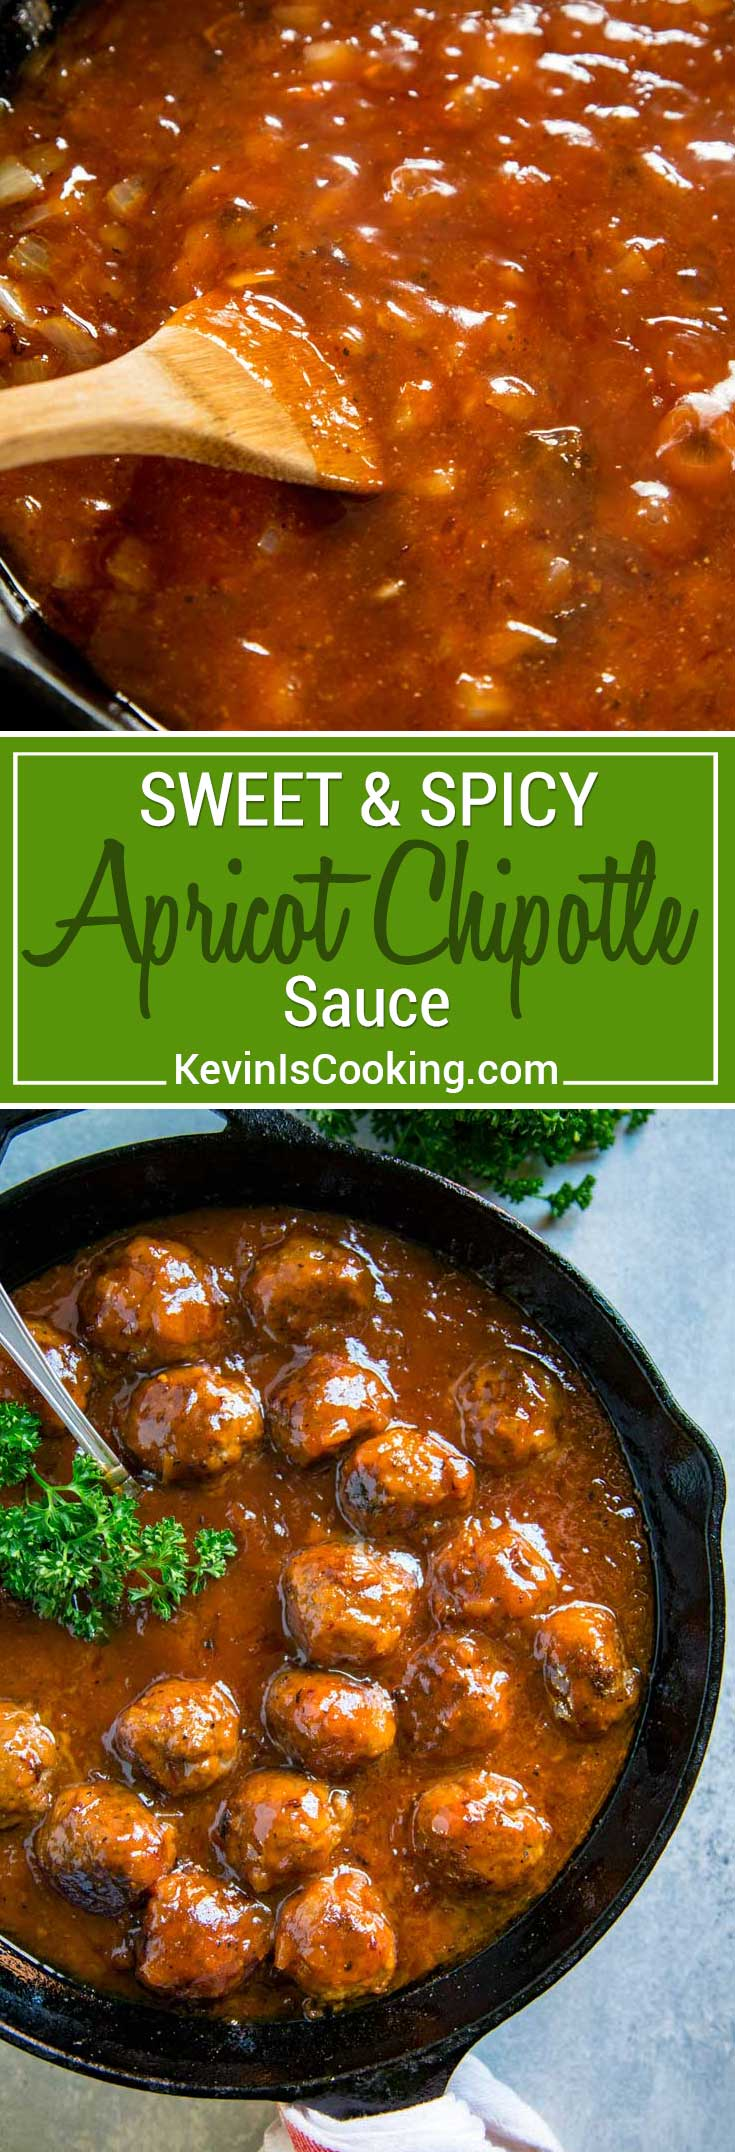 A wonderful sweet and savory sauce made with apricot jam, chipotle peppers and a few simple pantry items. Perfect to glaze meatballs, baste chicken and mop on ribs!